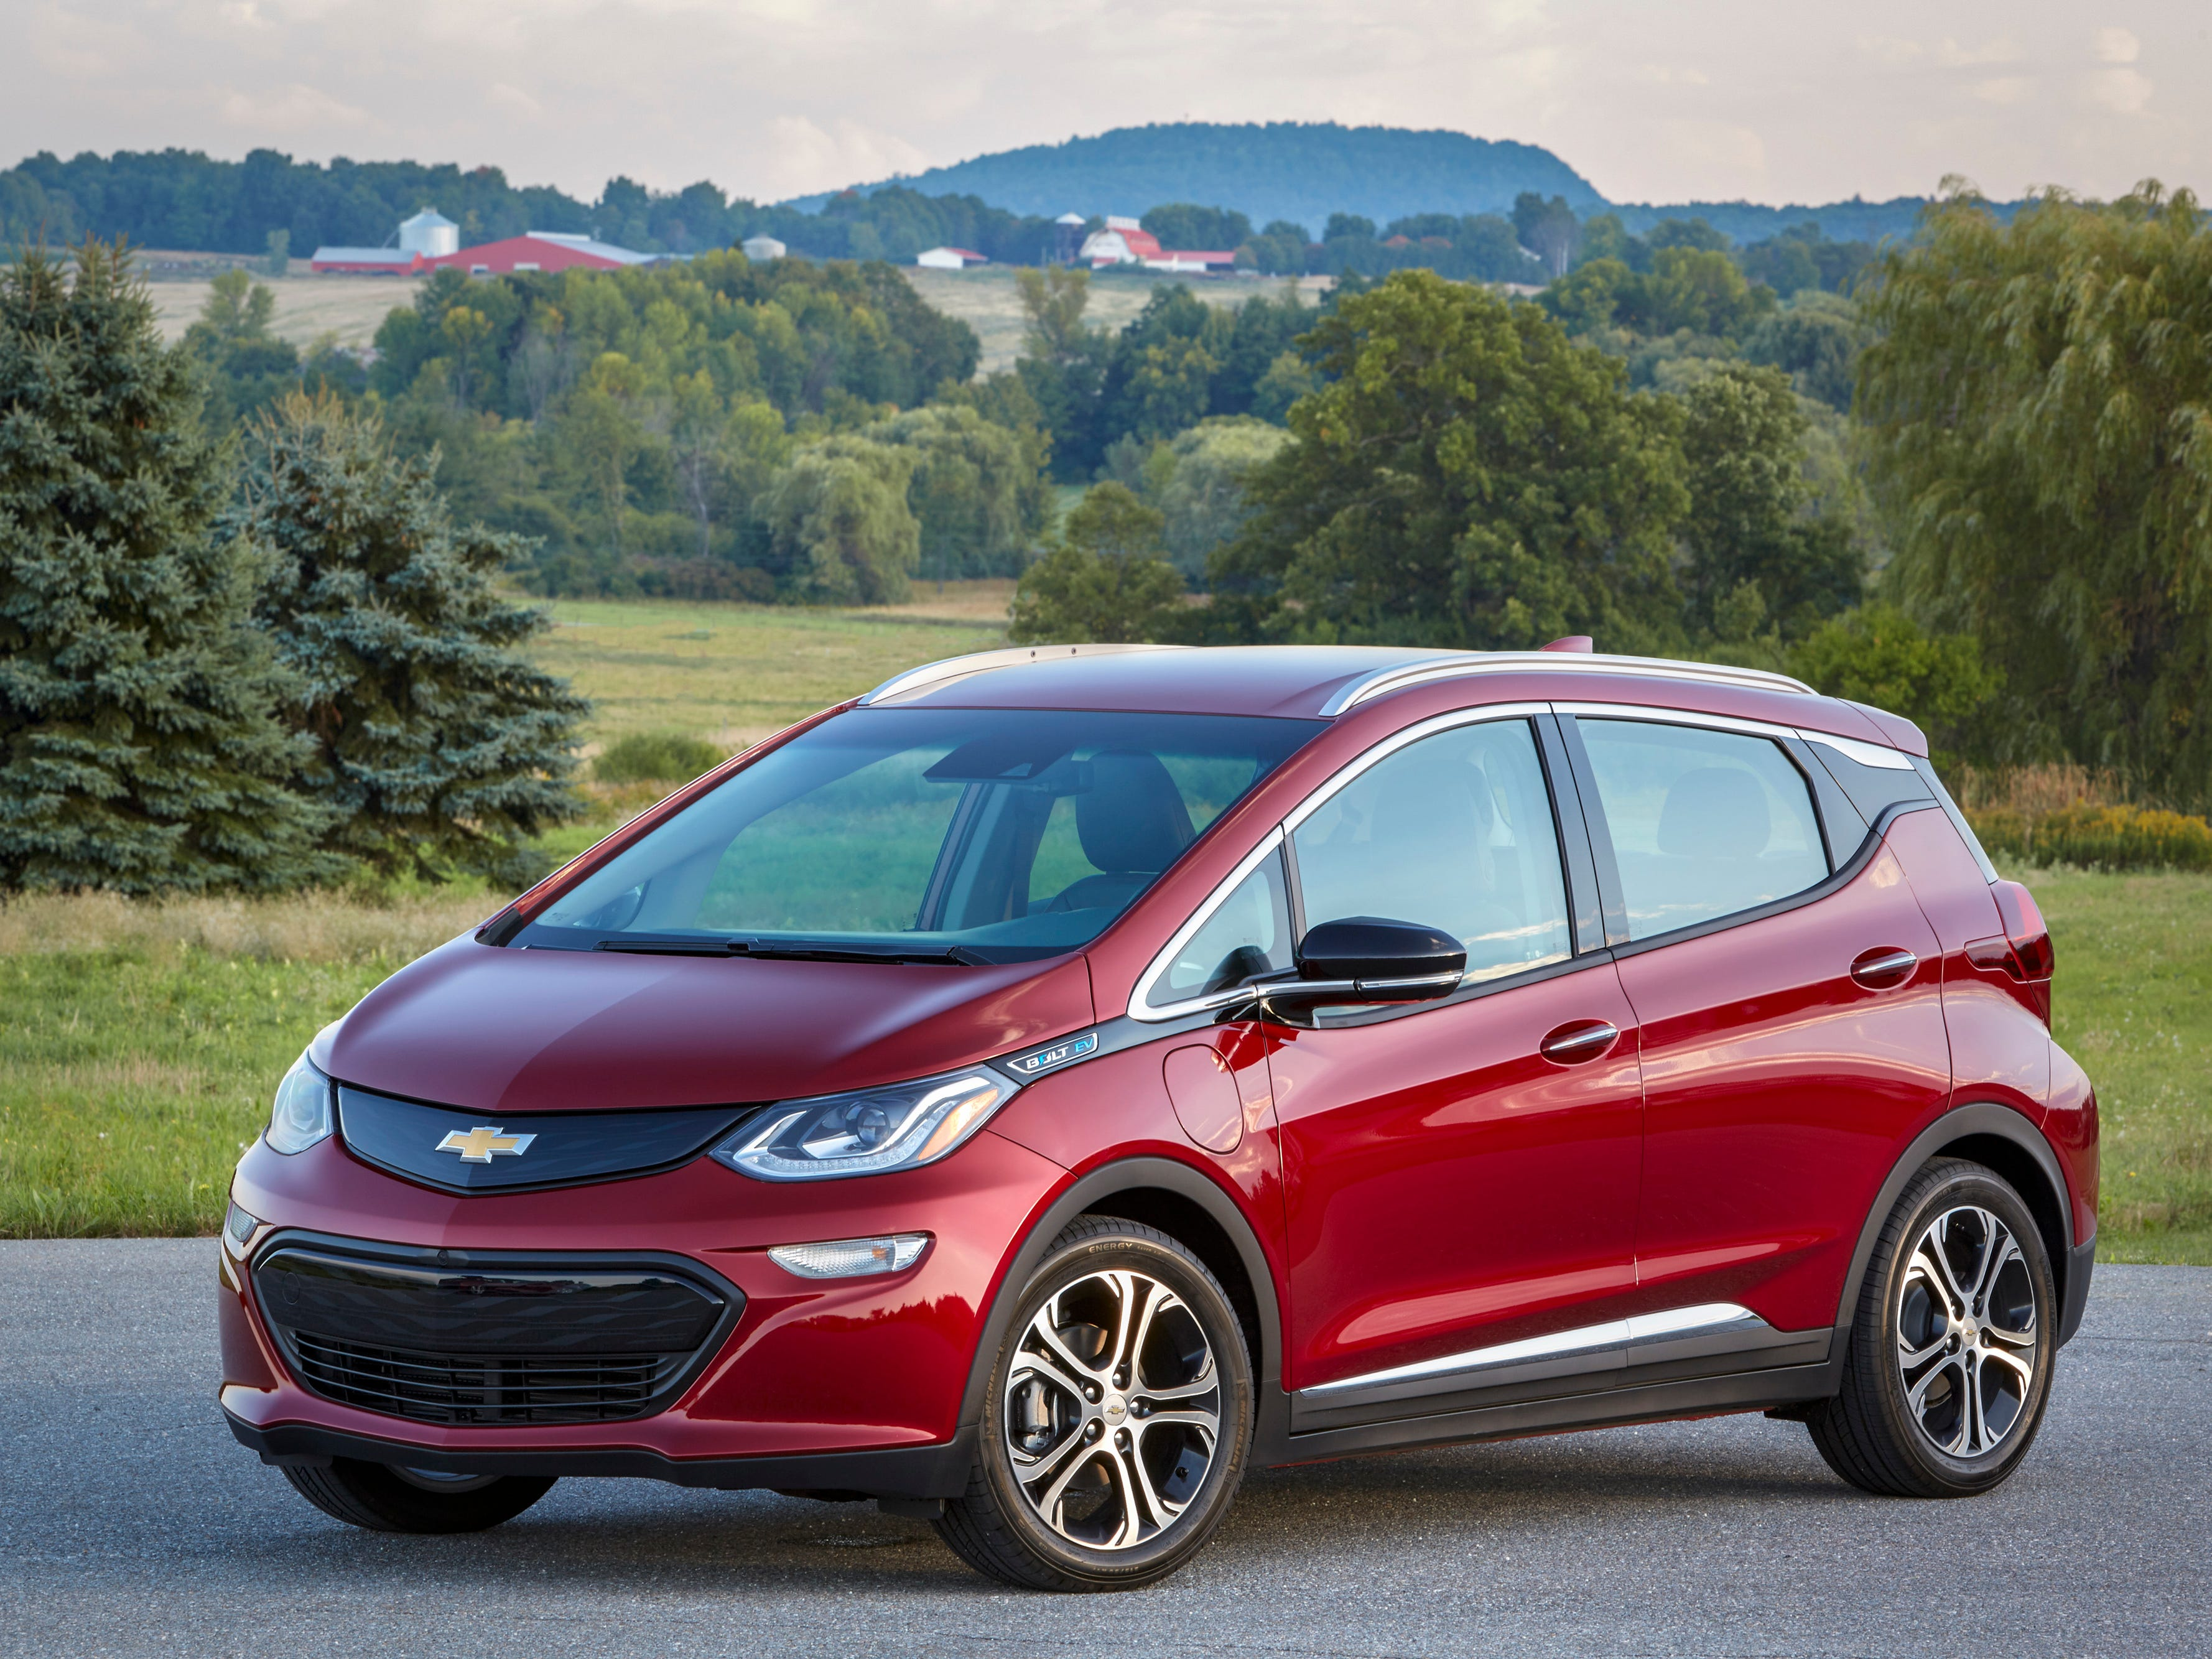 Not even EVs will escape the gas tax. The Chevy Bolt EV, in order to pay its fair share to road maintenance, would see its annual registration fee jump from $135 to $360.